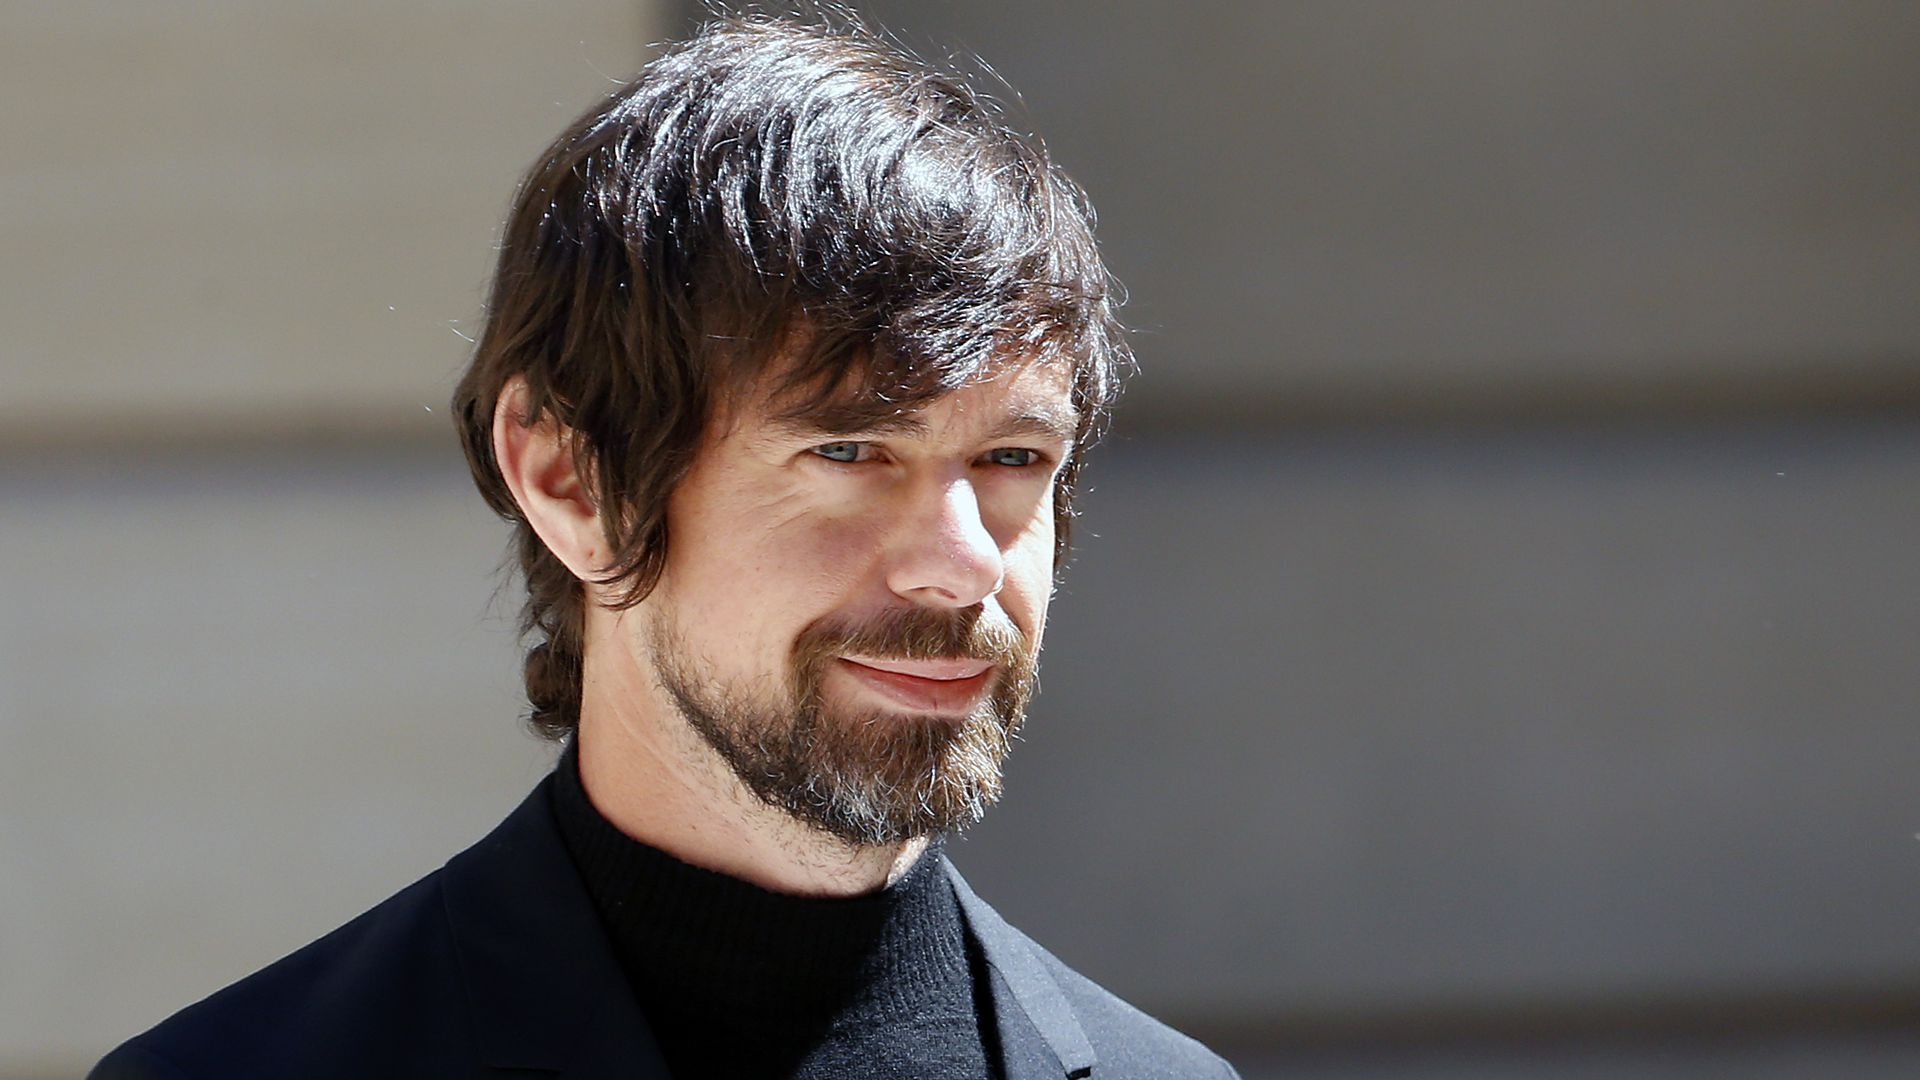 Photo of smiling Twitter CEO Jack Dorsey in black shirt and jacket